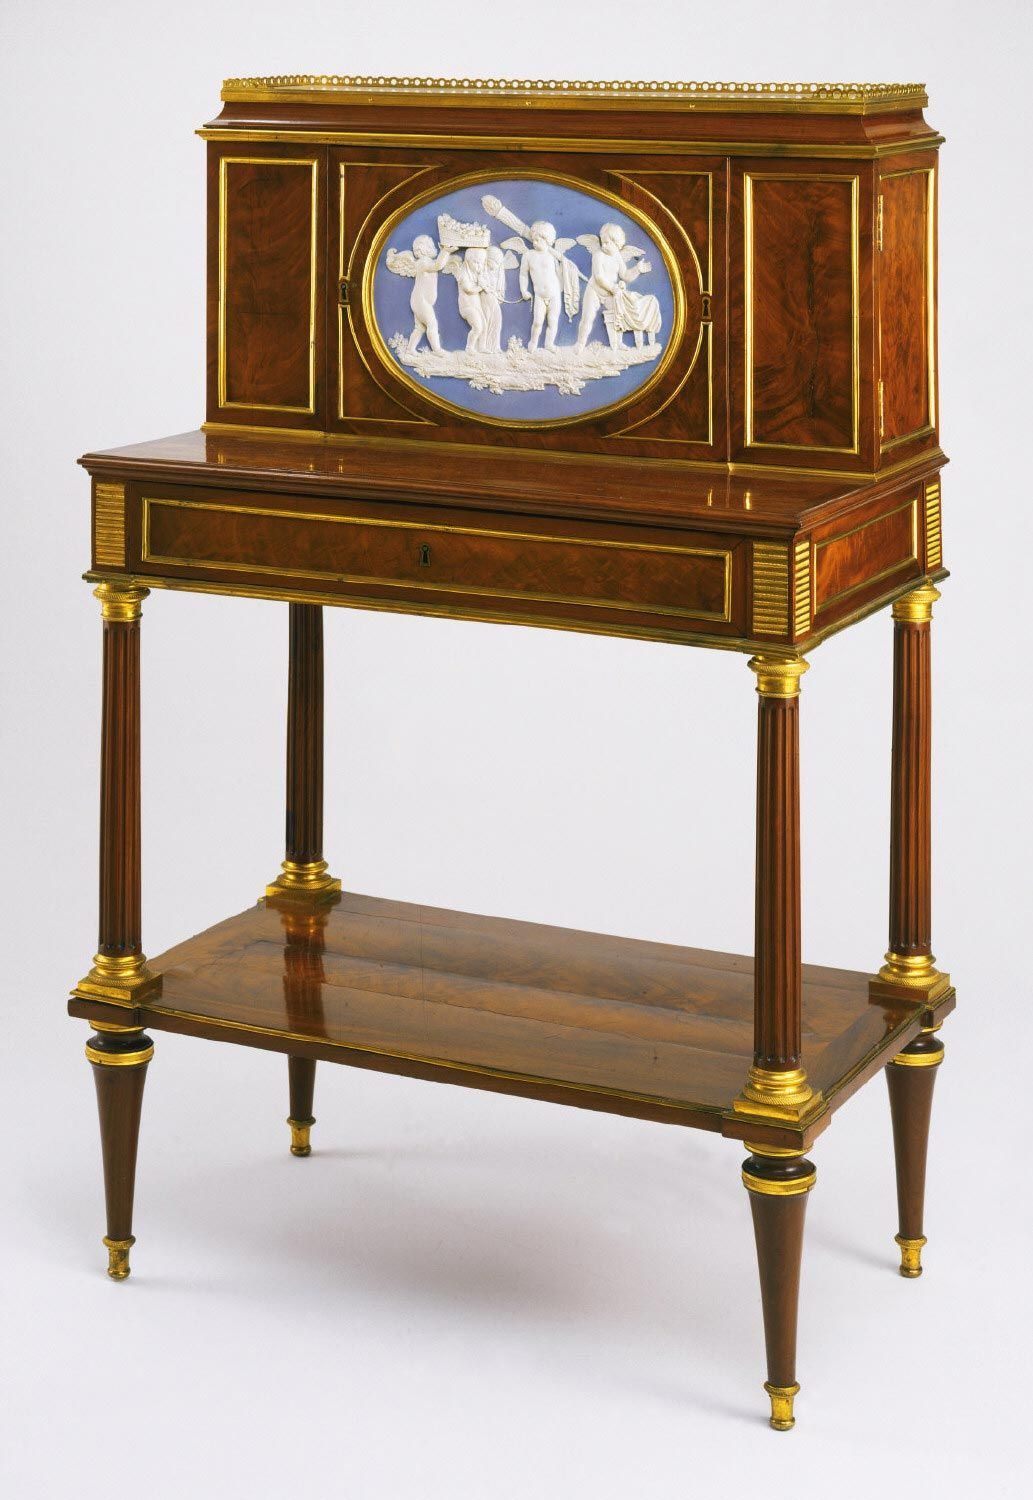 writing desk attributed to adam weisweiler german active paris 1744 1820 plaque. Black Bedroom Furniture Sets. Home Design Ideas